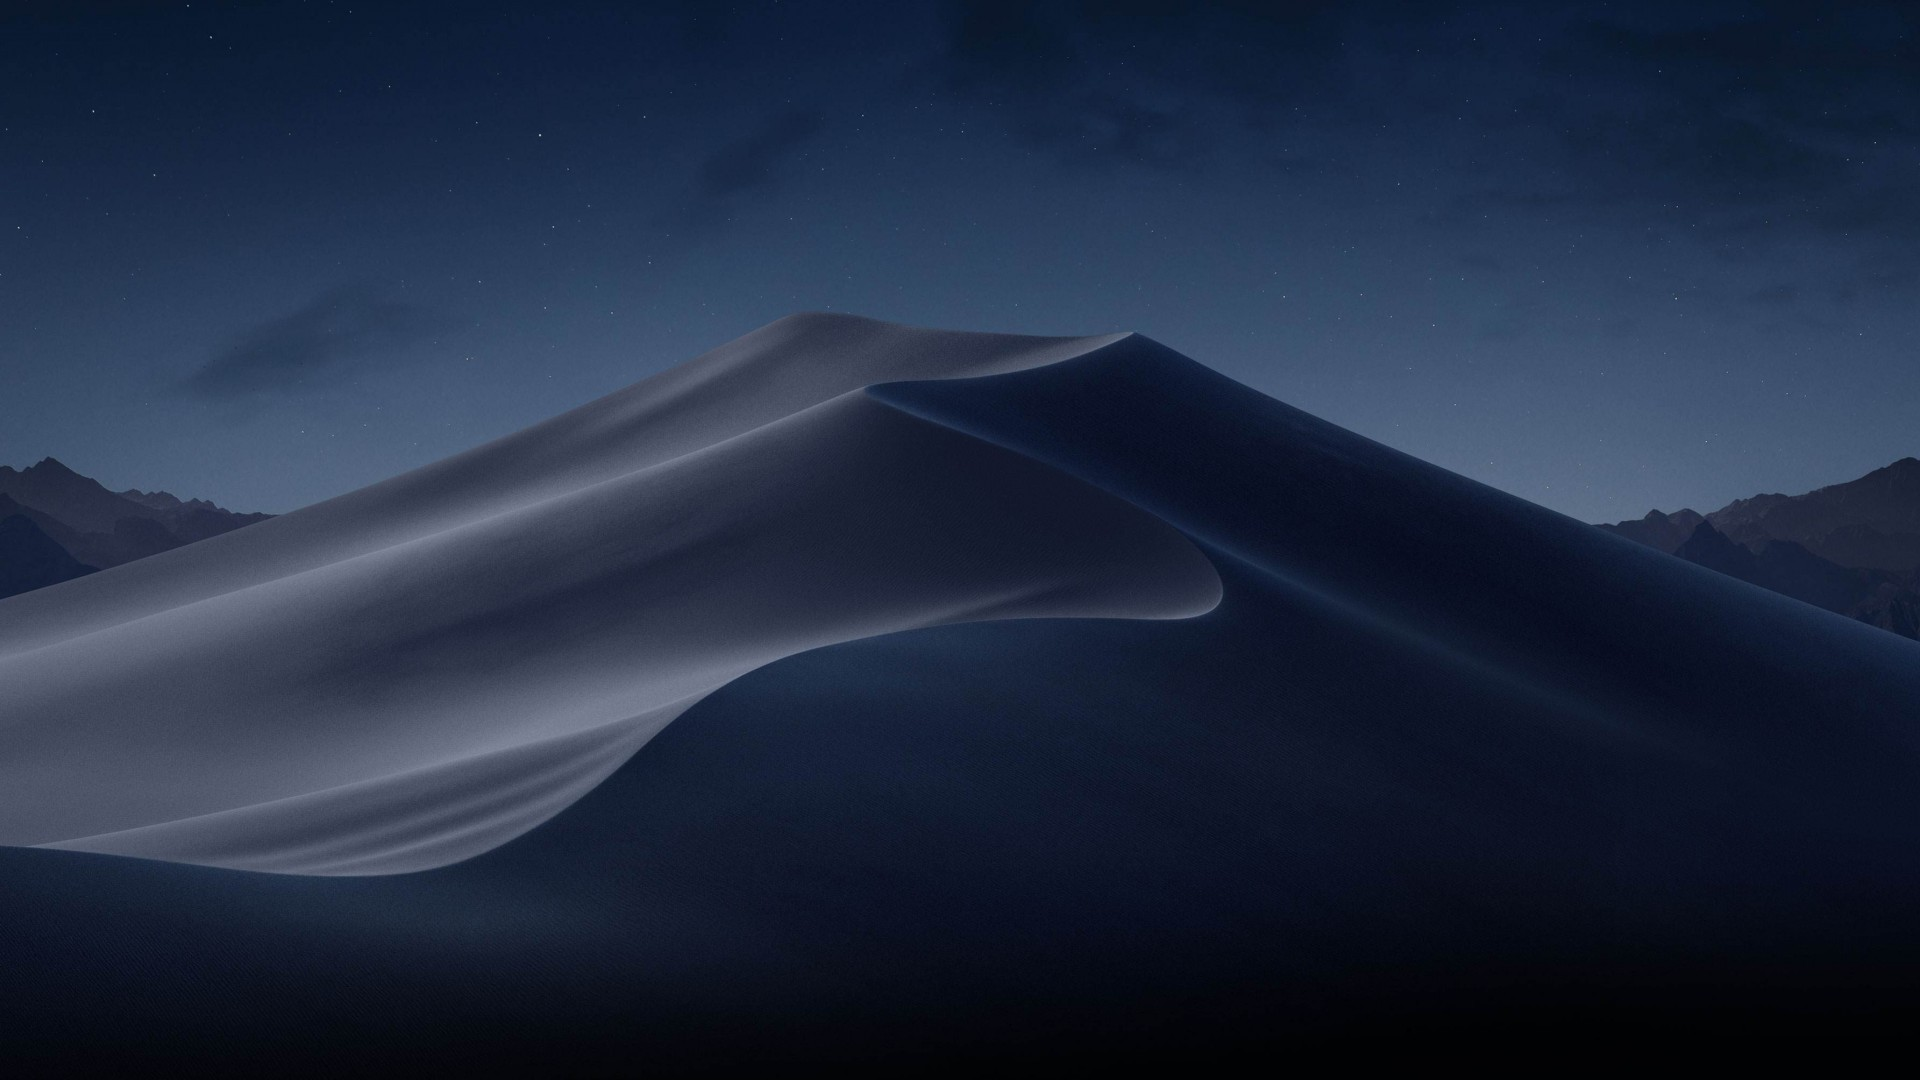 Wallpaper macOS Mojave, Night, Dunes, WWDC 2018, 4K, OS #18883